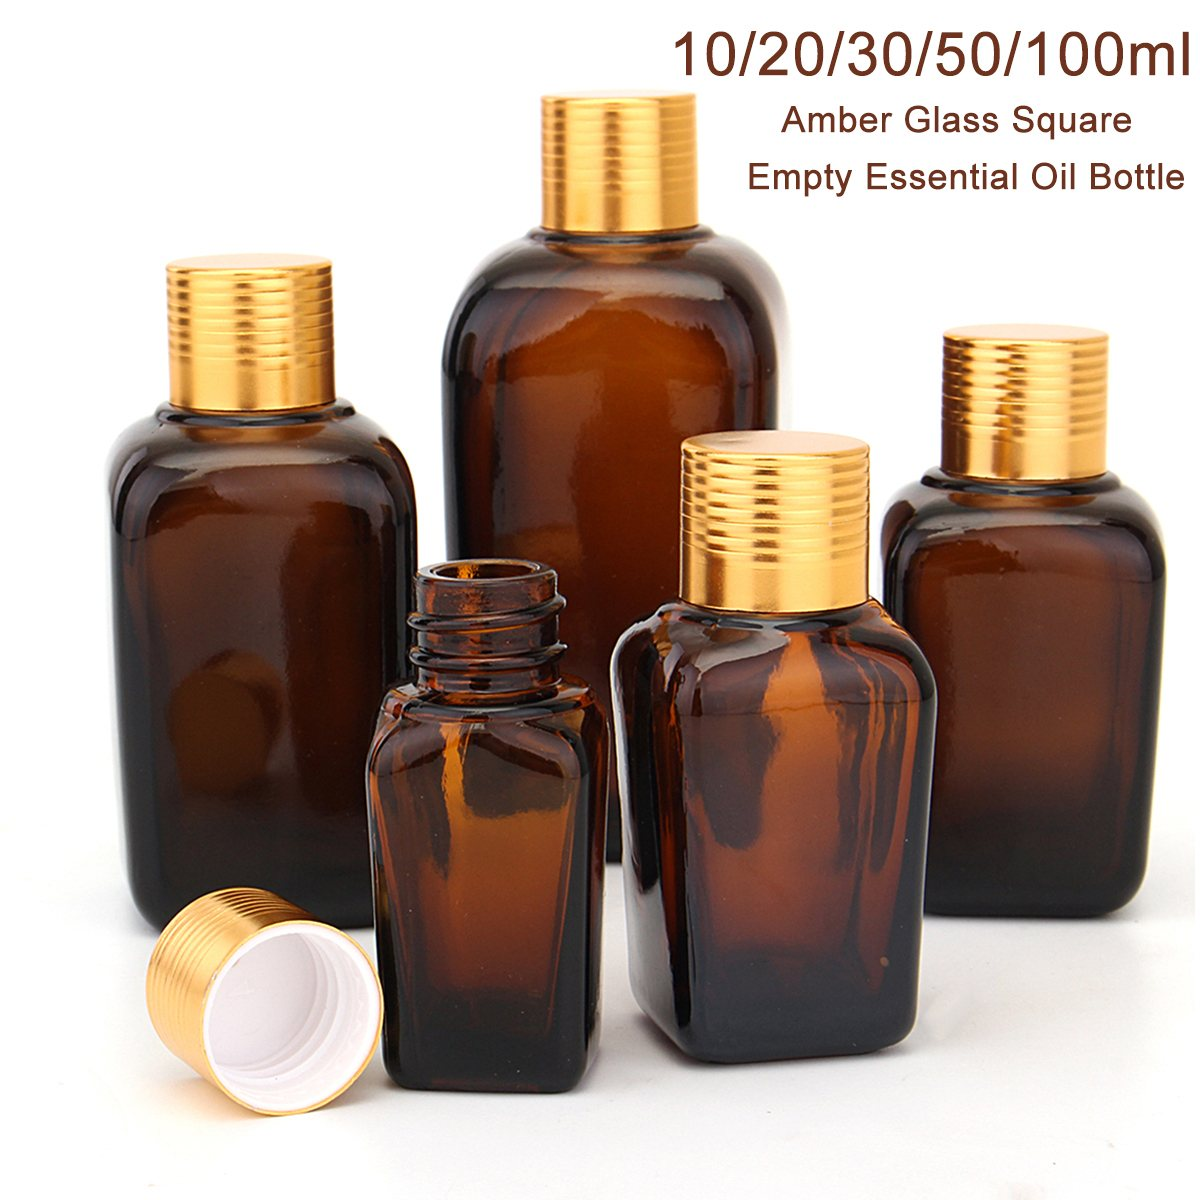 5PCS Square Empty Amber Glass Bottles 10/20/30/50/100ml Essential Oil Refillable Bottle Pot Portable Travel Body Cream Container